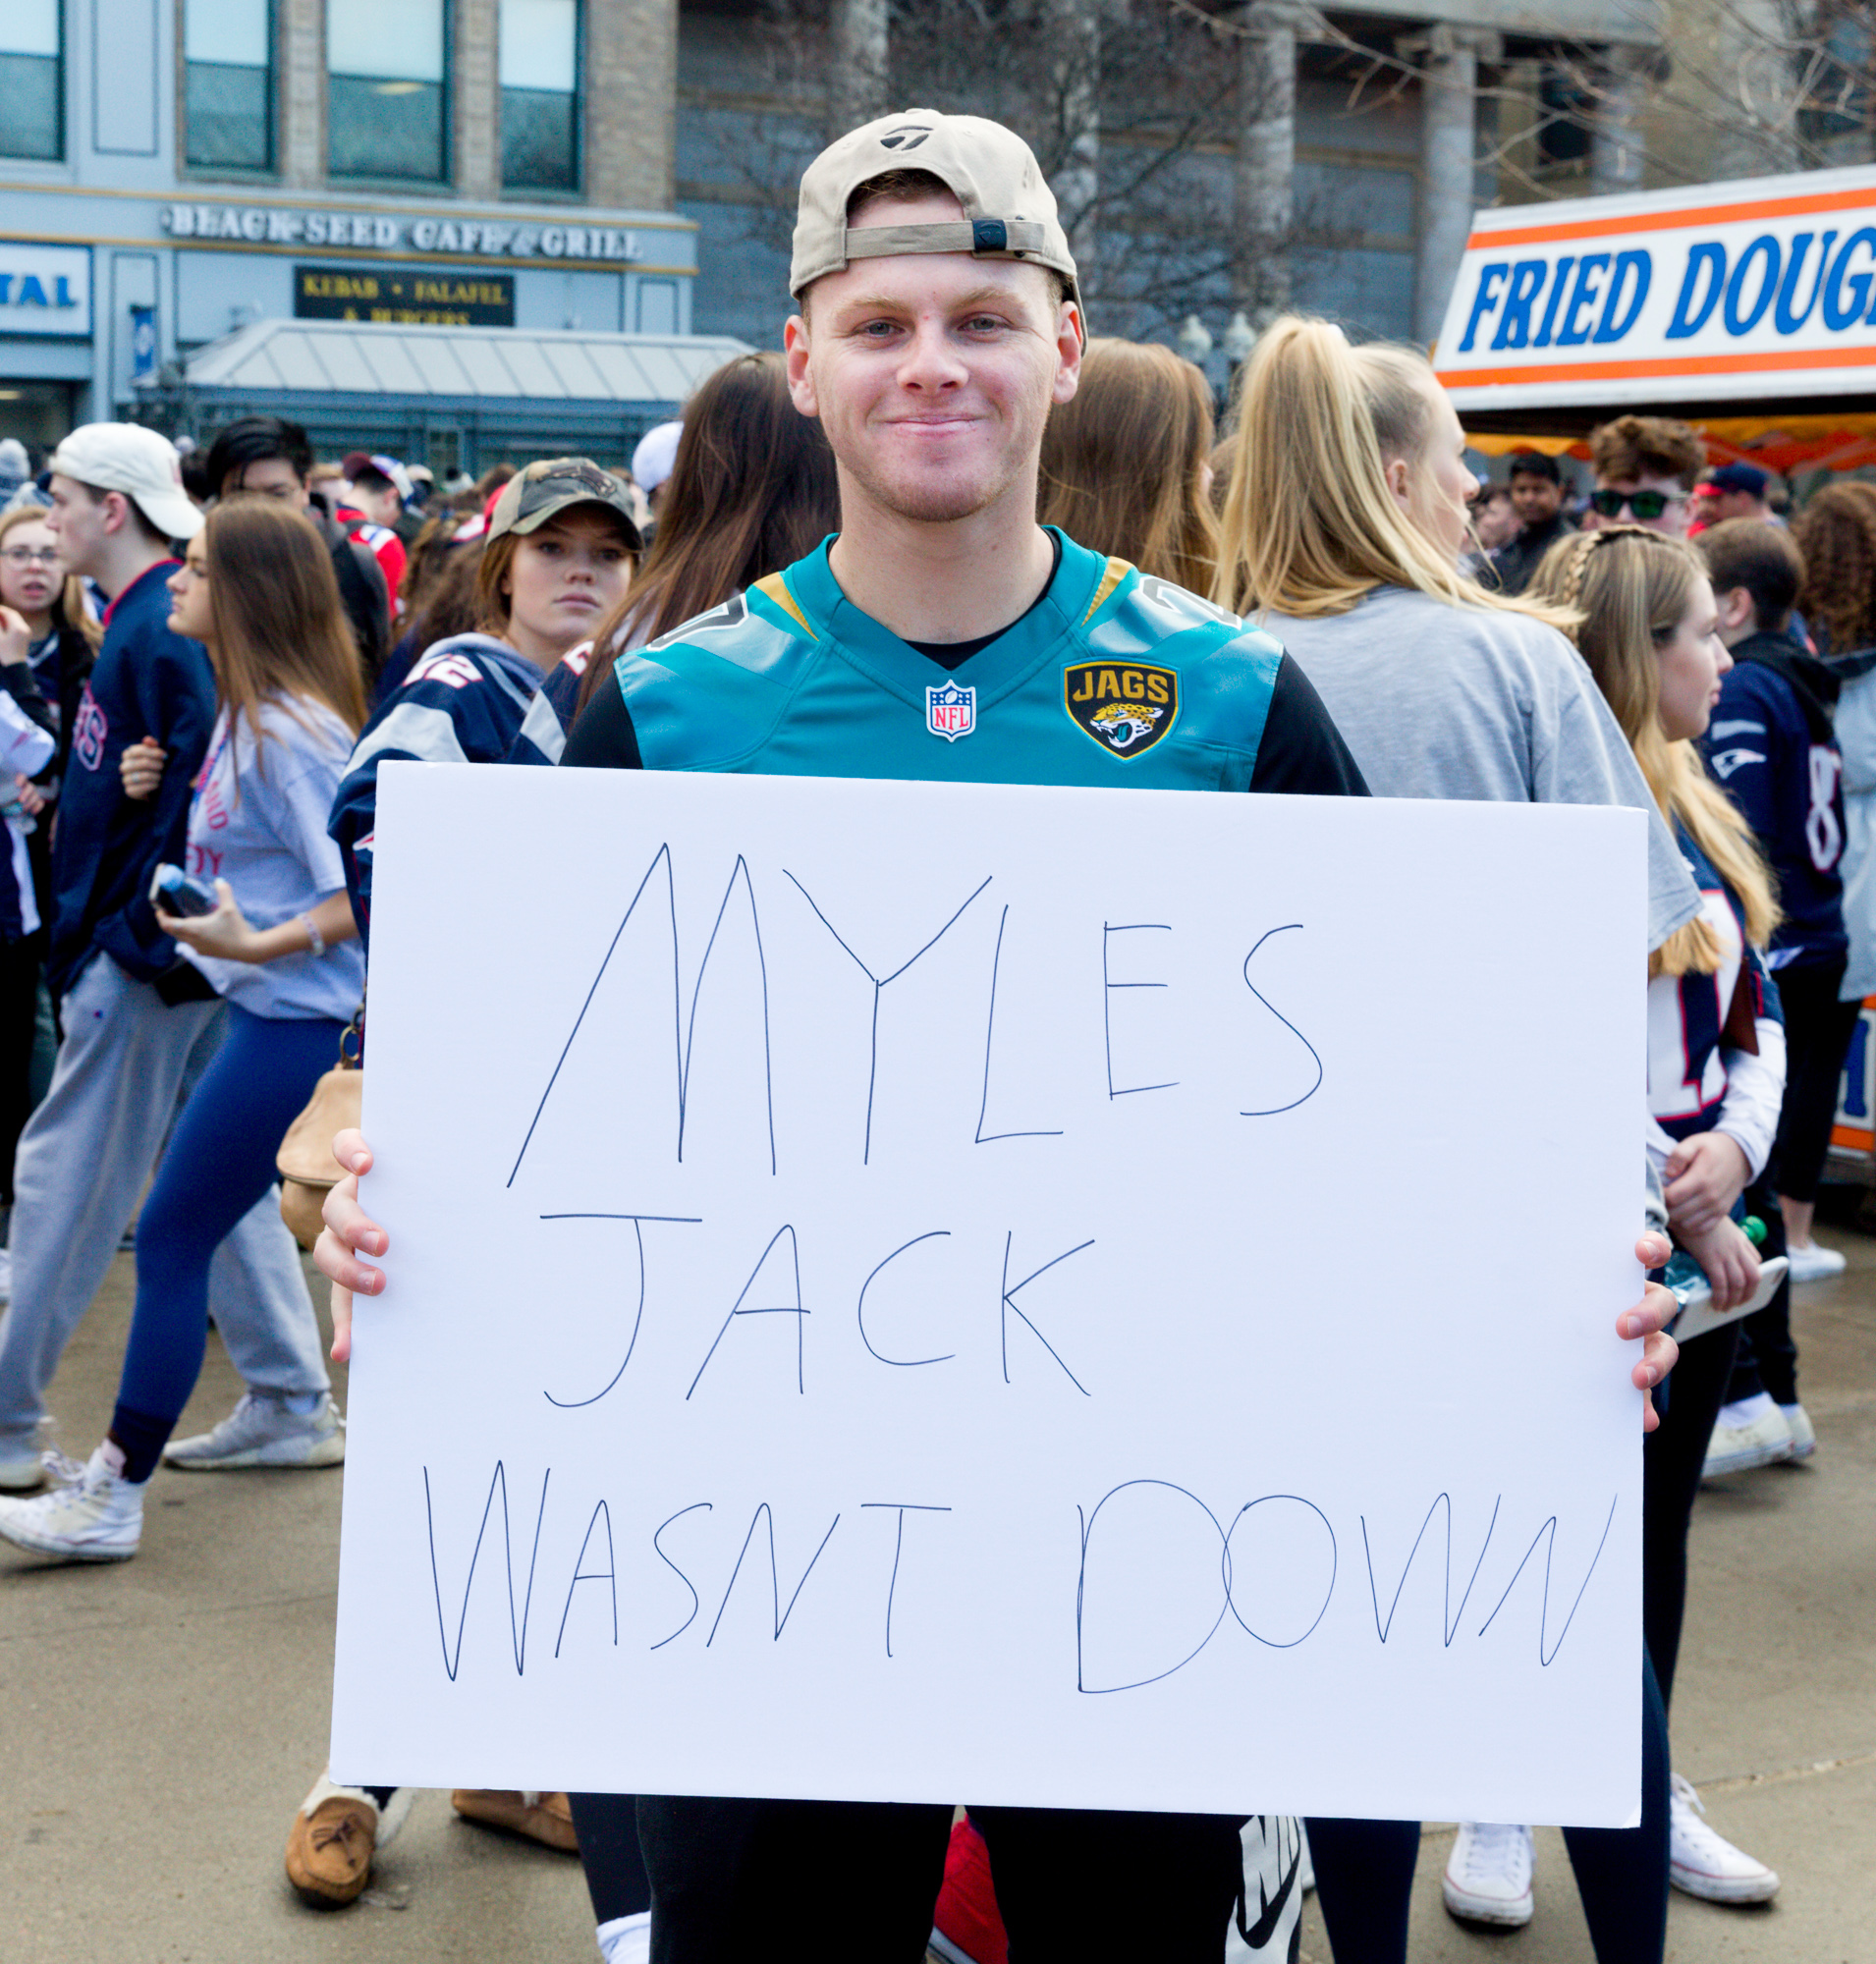 Jaguars fan still upset about last year's AFC Championship game. I had to tell him that, actually, by rule, Myles Jack was indeed down.